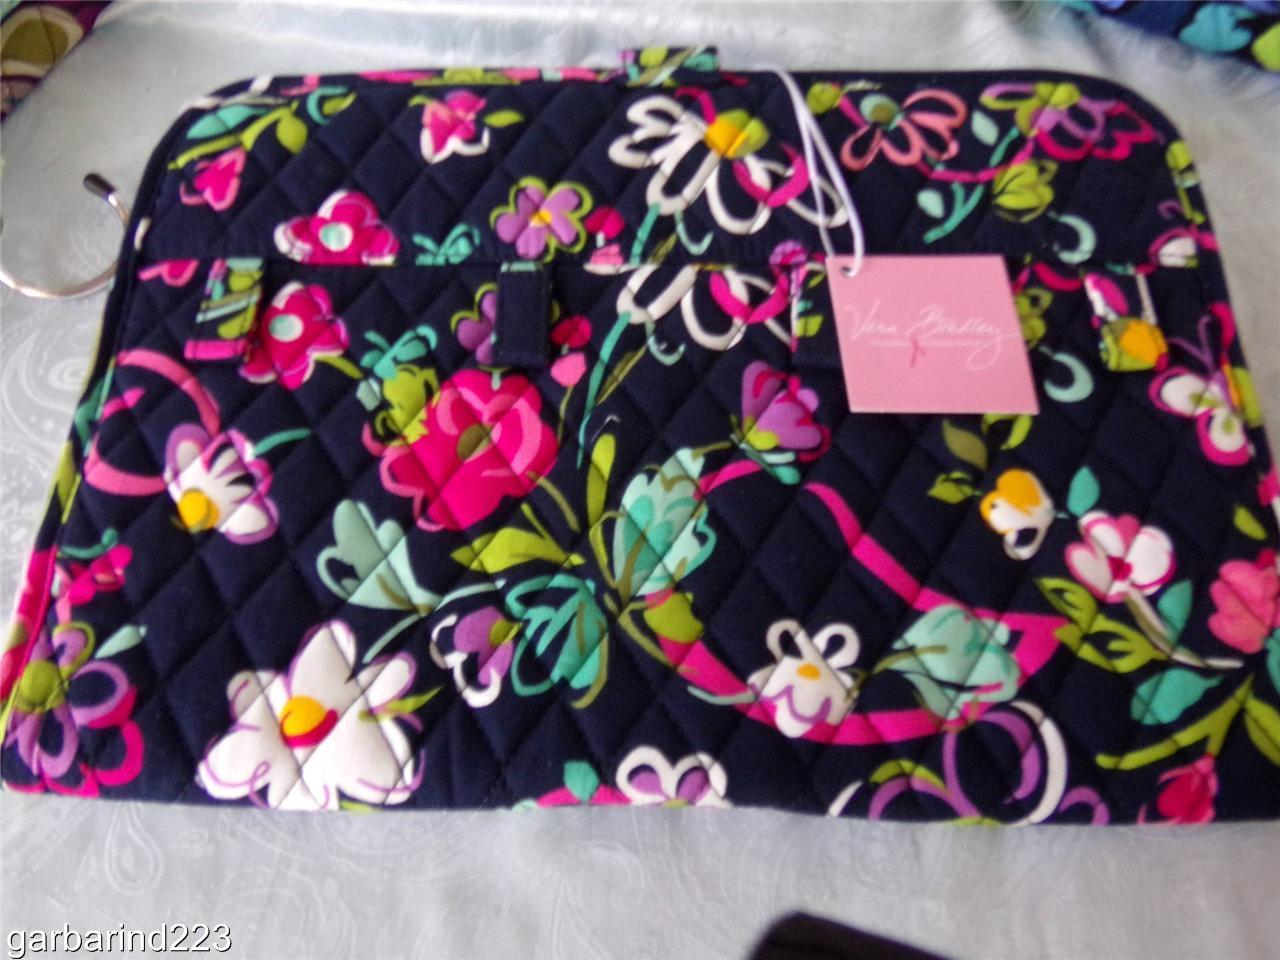 NWT Vera Bradley Keep It Up Organizer Hanging Jewelry Organizer